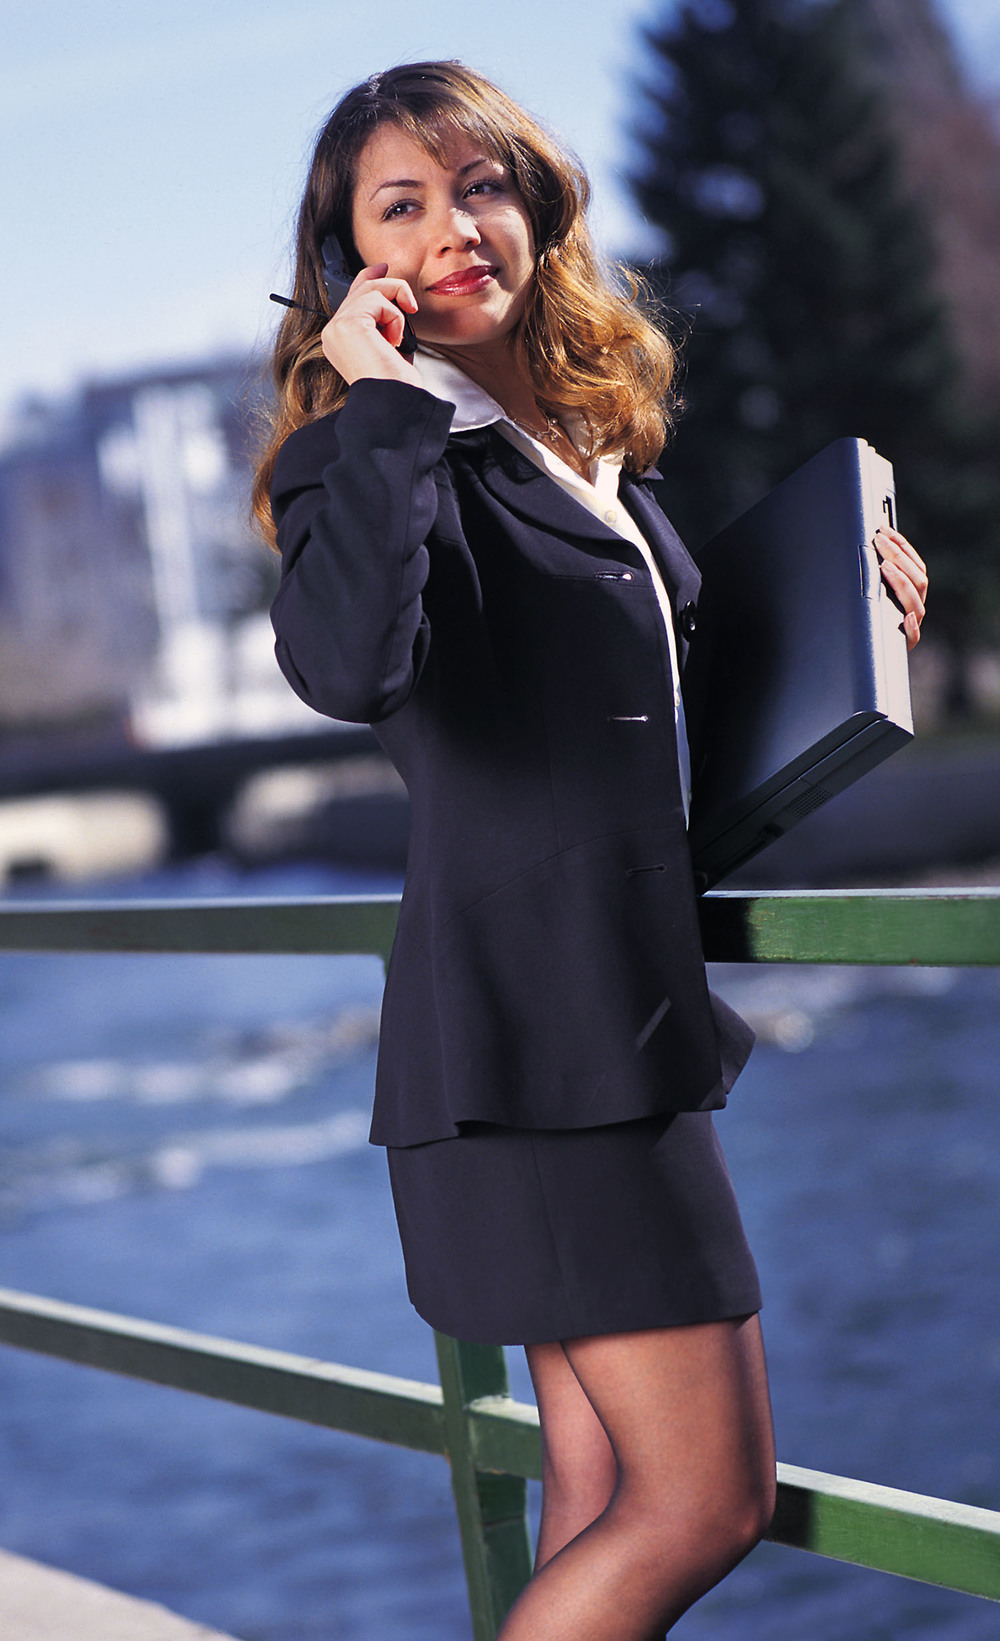 Businesswoman talking on cel holding laptop.jpg